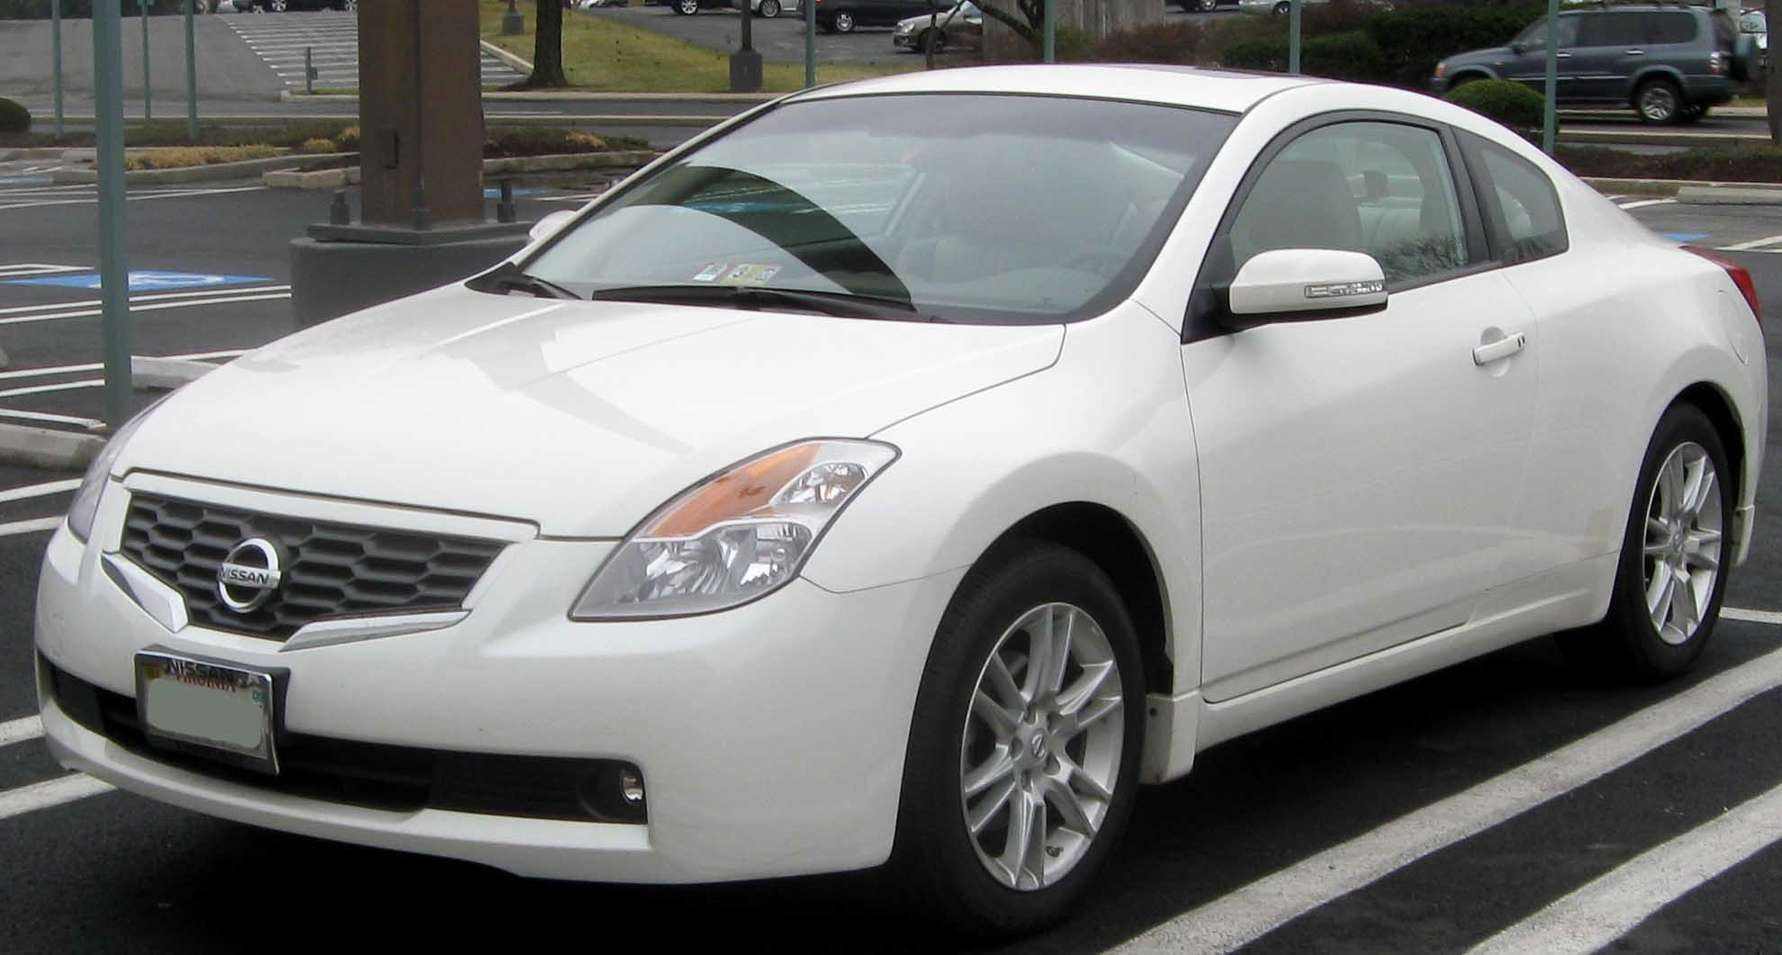 Nissan Altima Coupe #7963977